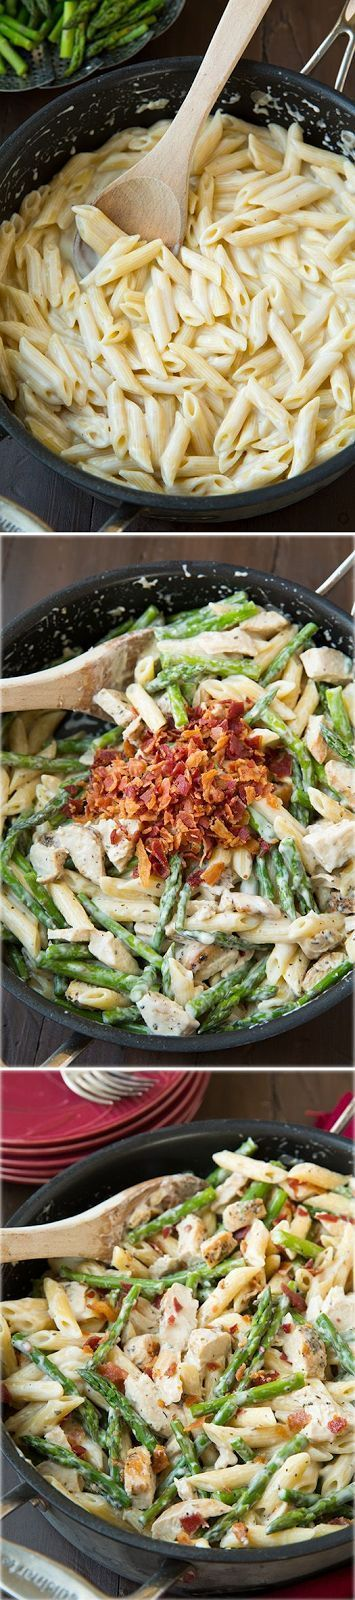 Foodie Place: Creamy Chicken and Asparagus Pasta with Bacon - this pasta is AMAZING! Like a lighter alfredo pasta with bonus of herbed chicken, fresh asparagus and salty bacon. So good! Yes.